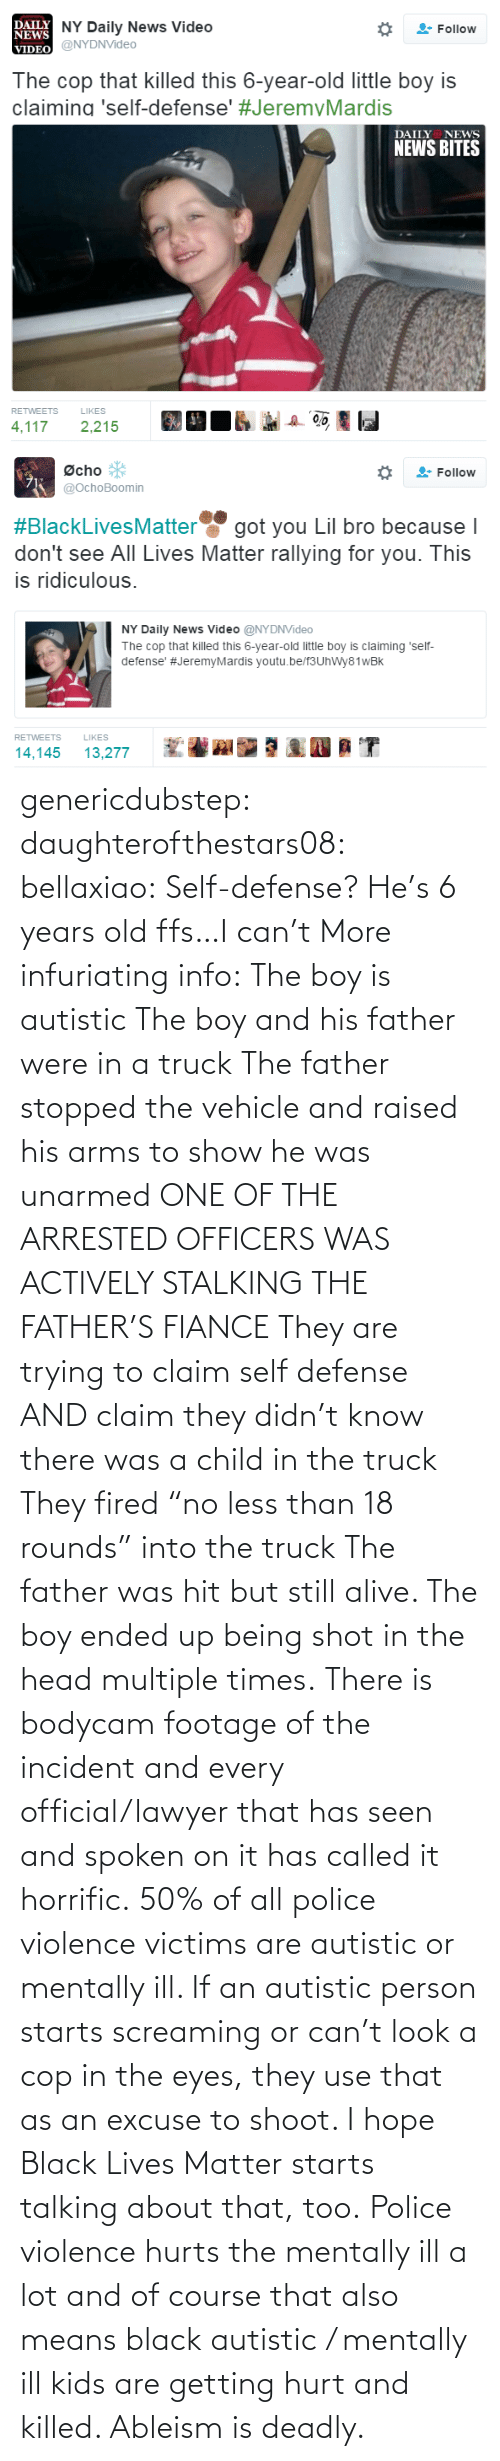 "but still: genericdubstep: daughterofthestars08:  bellaxiao:  Self-defense? He's 6 years old ffs…I can't  More infuriating info: The boy is autistic The boy and his father were in a truck The father stopped the vehicle and raised his arms to show he was unarmed ONE OF THE ARRESTED OFFICERS WAS ACTIVELY STALKING THE FATHER'S FIANCE They are trying to claim self defense AND claim they didn't know there was a child in the truck They fired ""no less than 18 rounds"" into the truck The father was hit but still alive. The boy ended up being shot in the head multiple times. There is bodycam footage of the incident and every official/lawyer that has seen and spoken on it has called it horrific.  50% of all police violence victims are autistic or mentally ill. If an autistic person starts screaming or can't look a cop in the eyes, they use that as an excuse to shoot. I hope Black Lives Matter starts talking about that, too. Police violence hurts the mentally ill a lot and of course that also means black autistic / mentally ill kids are getting hurt and killed. Ableism is deadly."